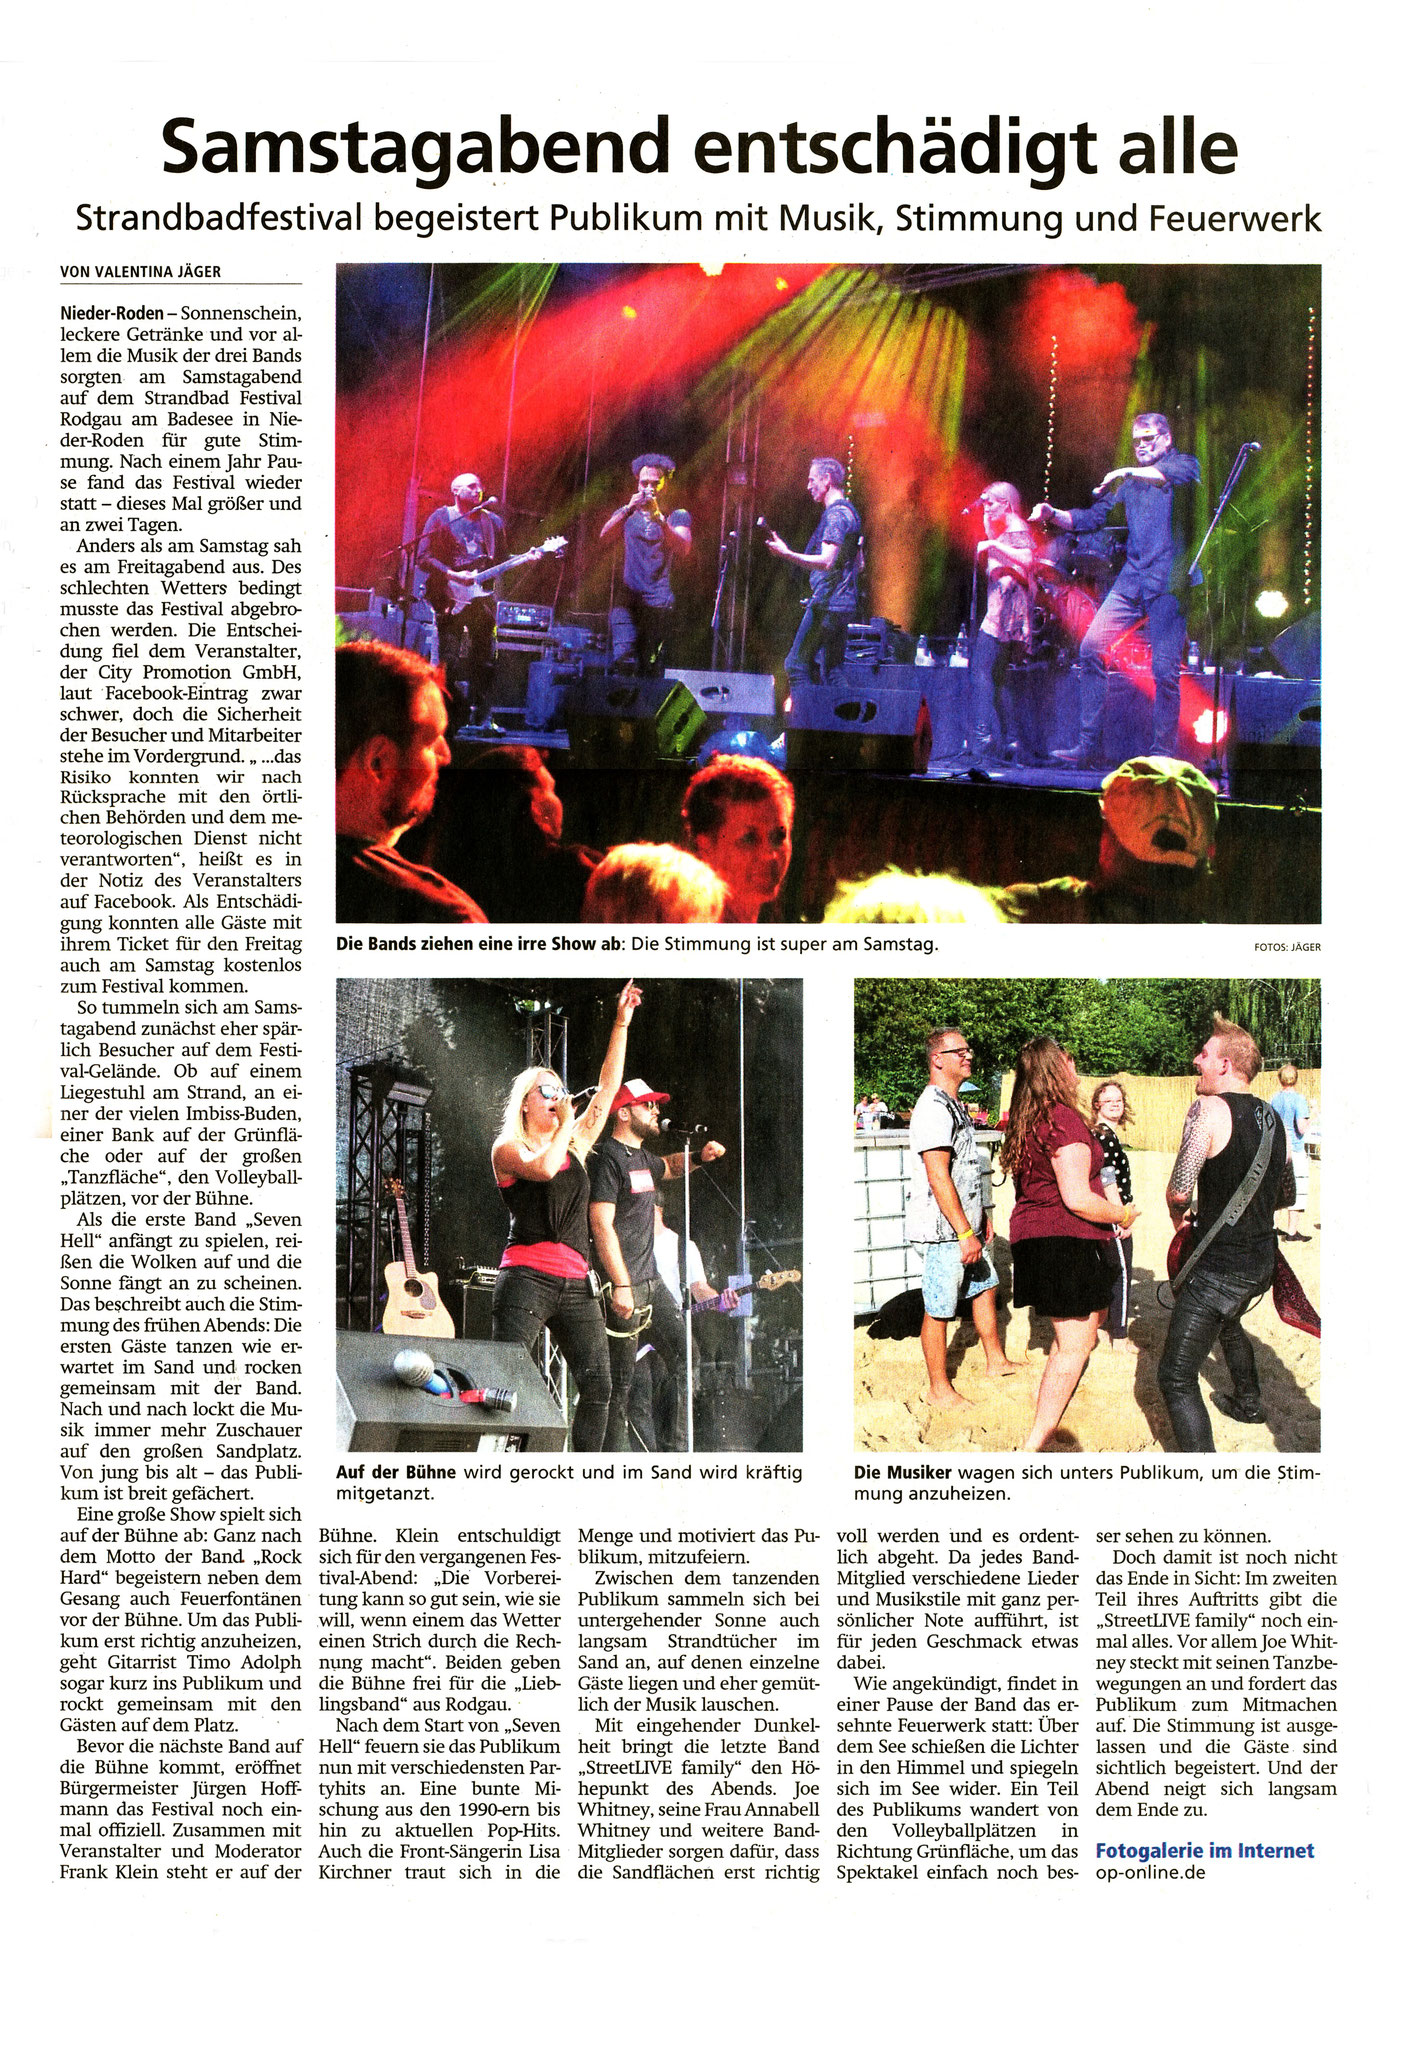 Offenbach Post, 12. August 2019